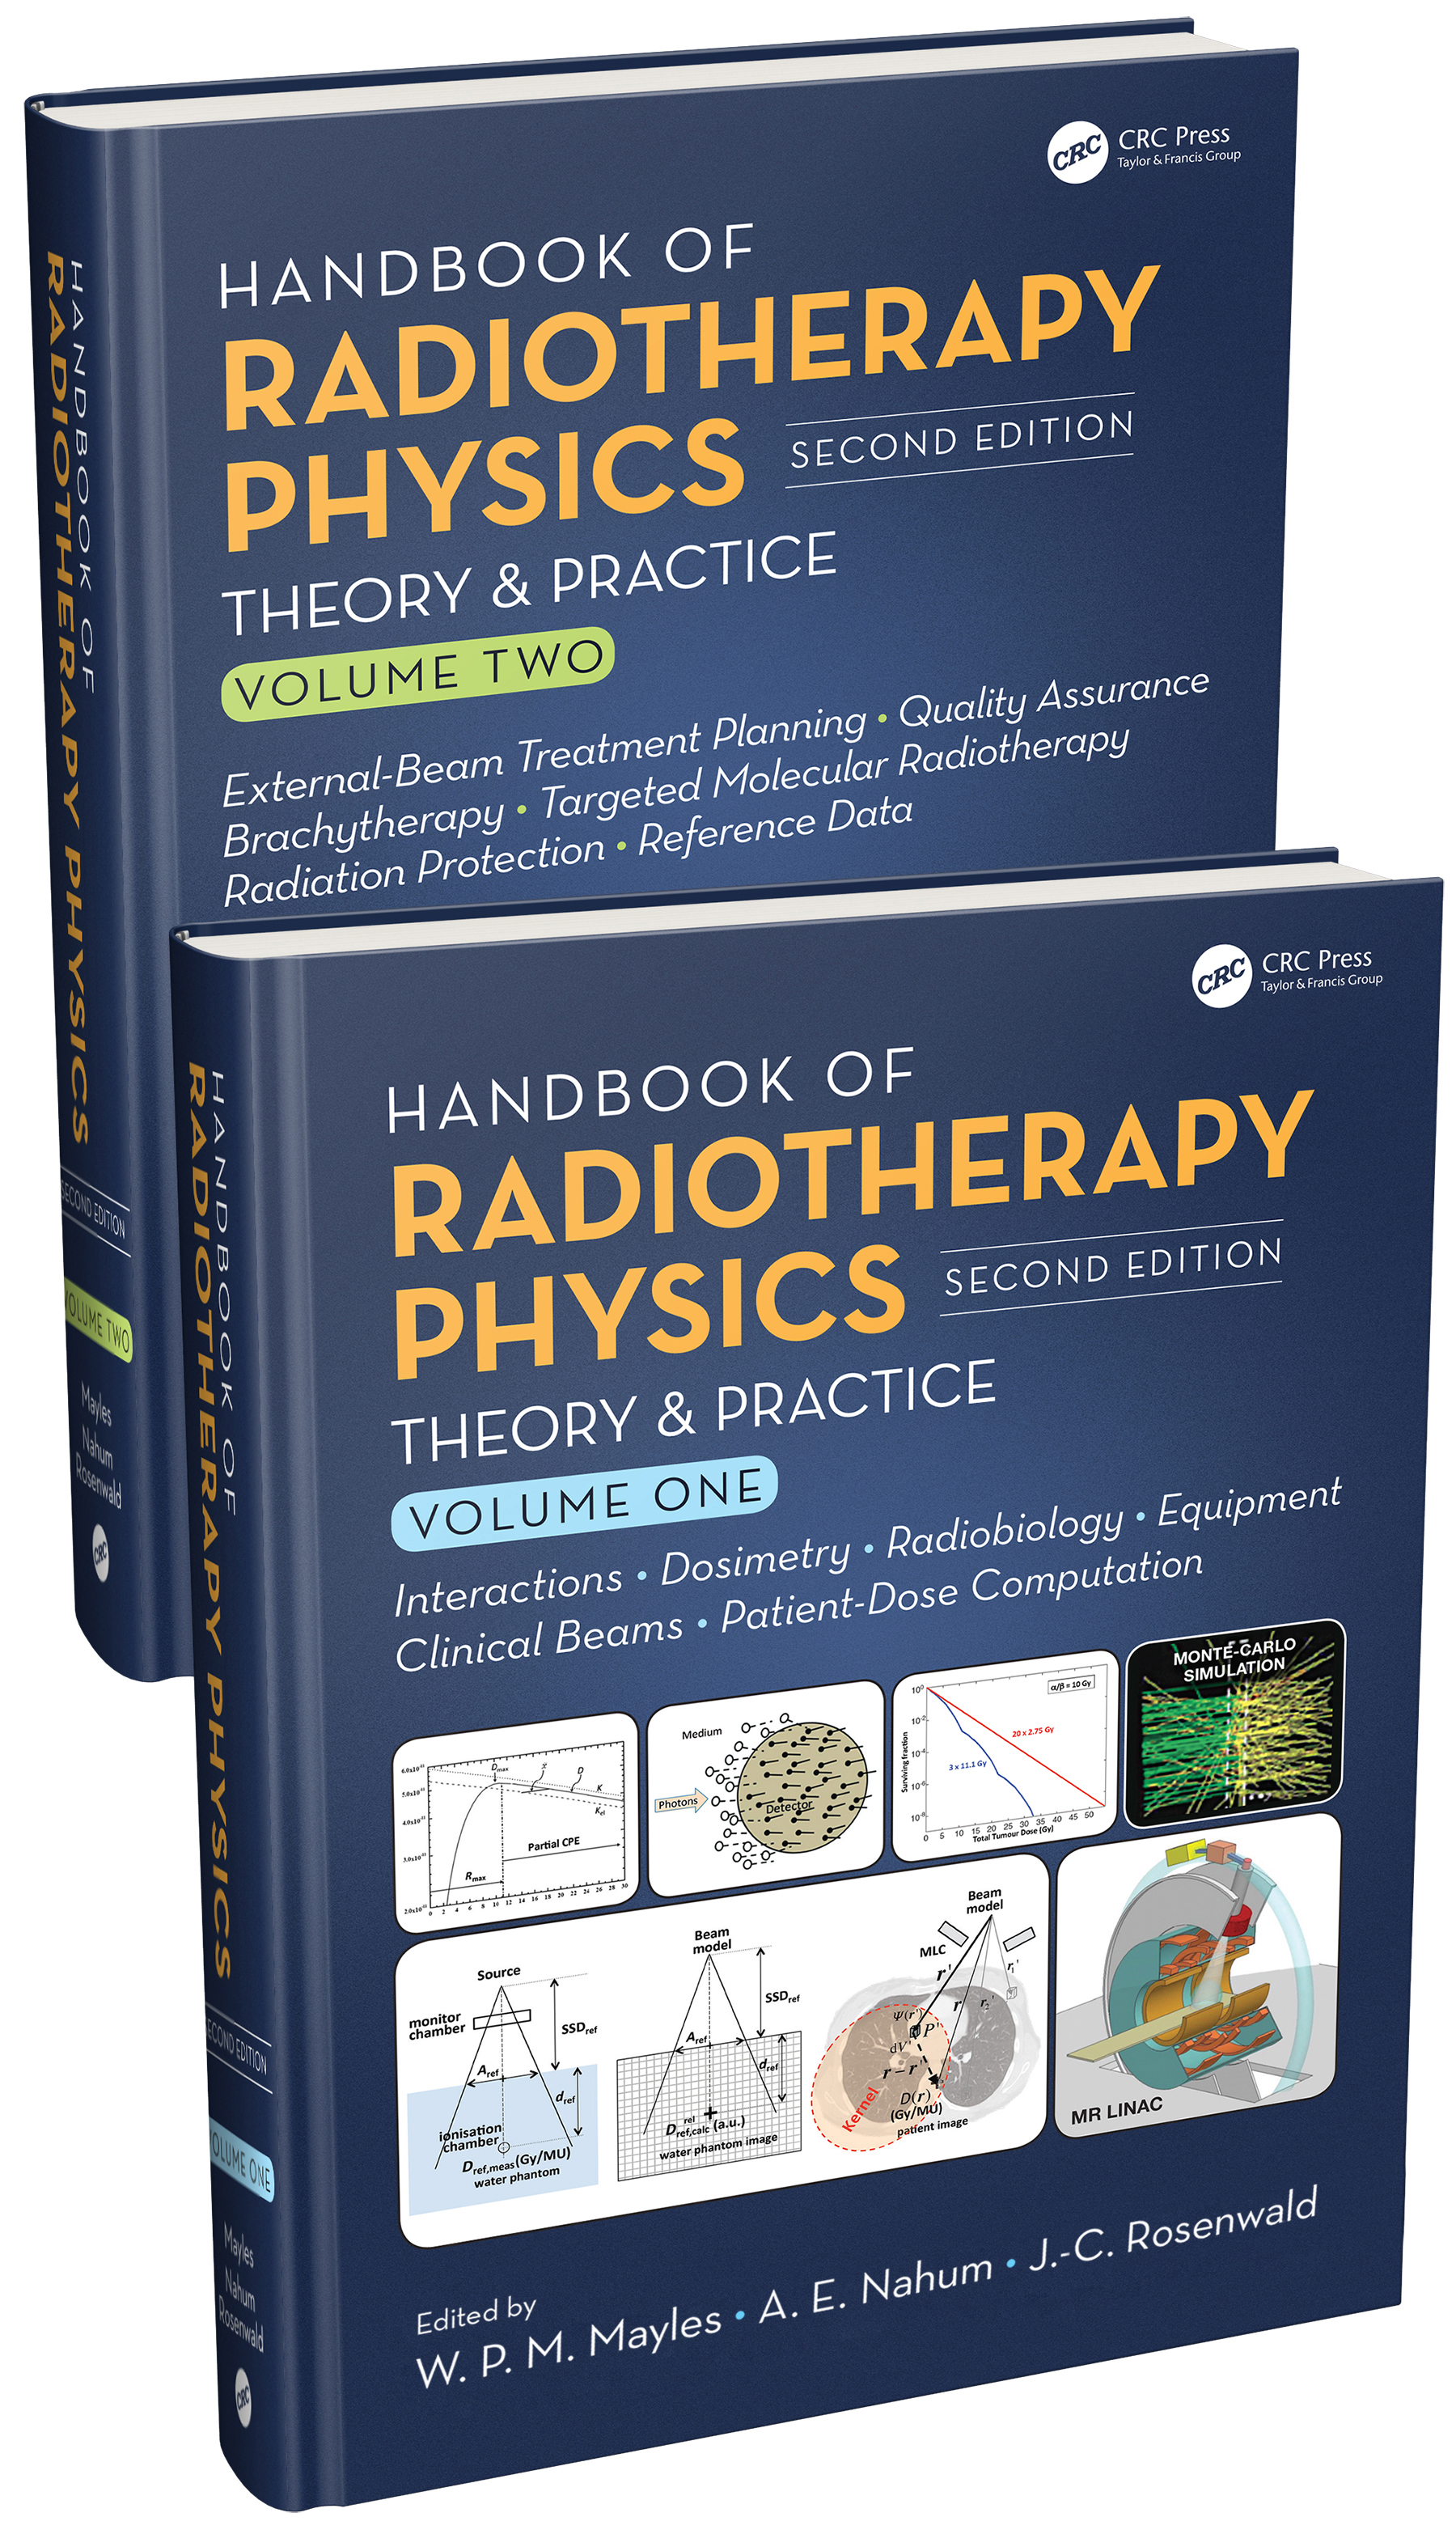 Handbook of Radiotherapy Physics: Theory and Practice, Second Edition, Two Volume Set book cover